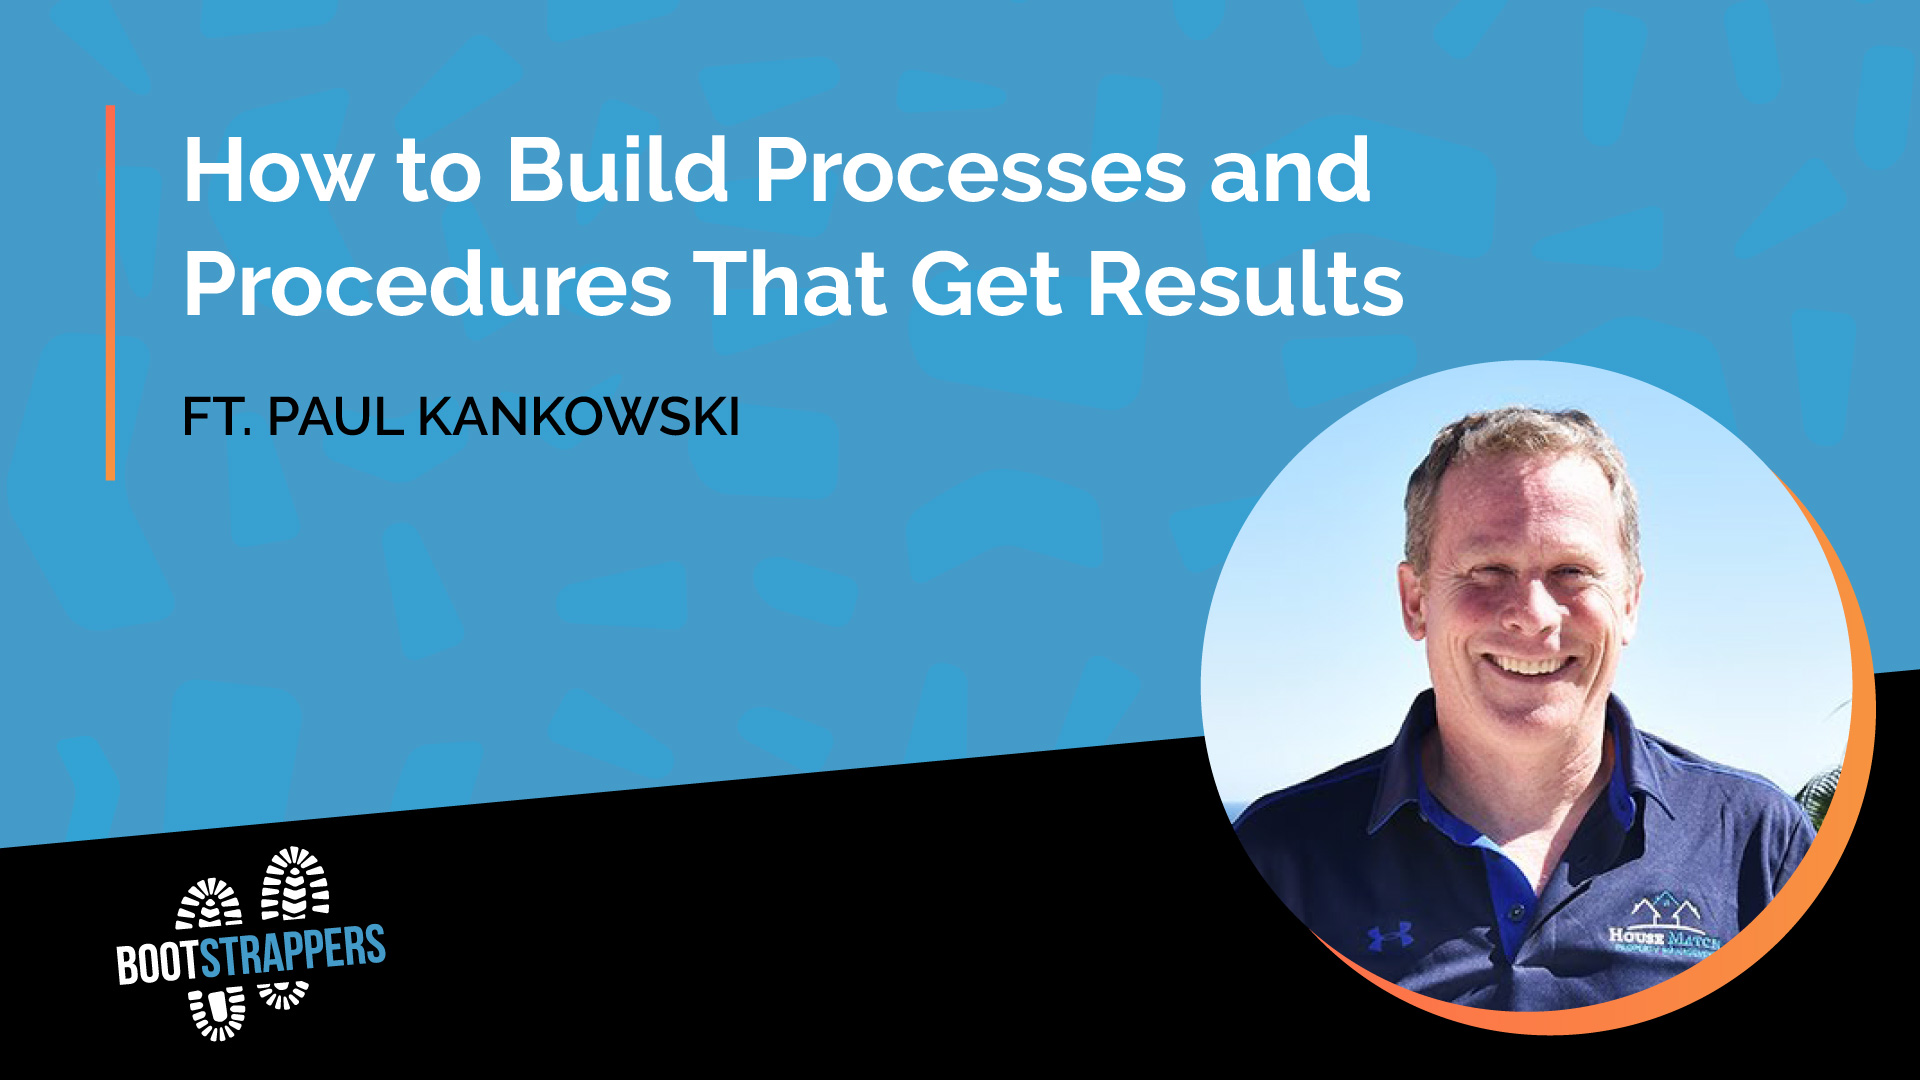 anequim-bootstrappers-how-to-build-processes-and-procedures-that-get-results-paul-kankowski